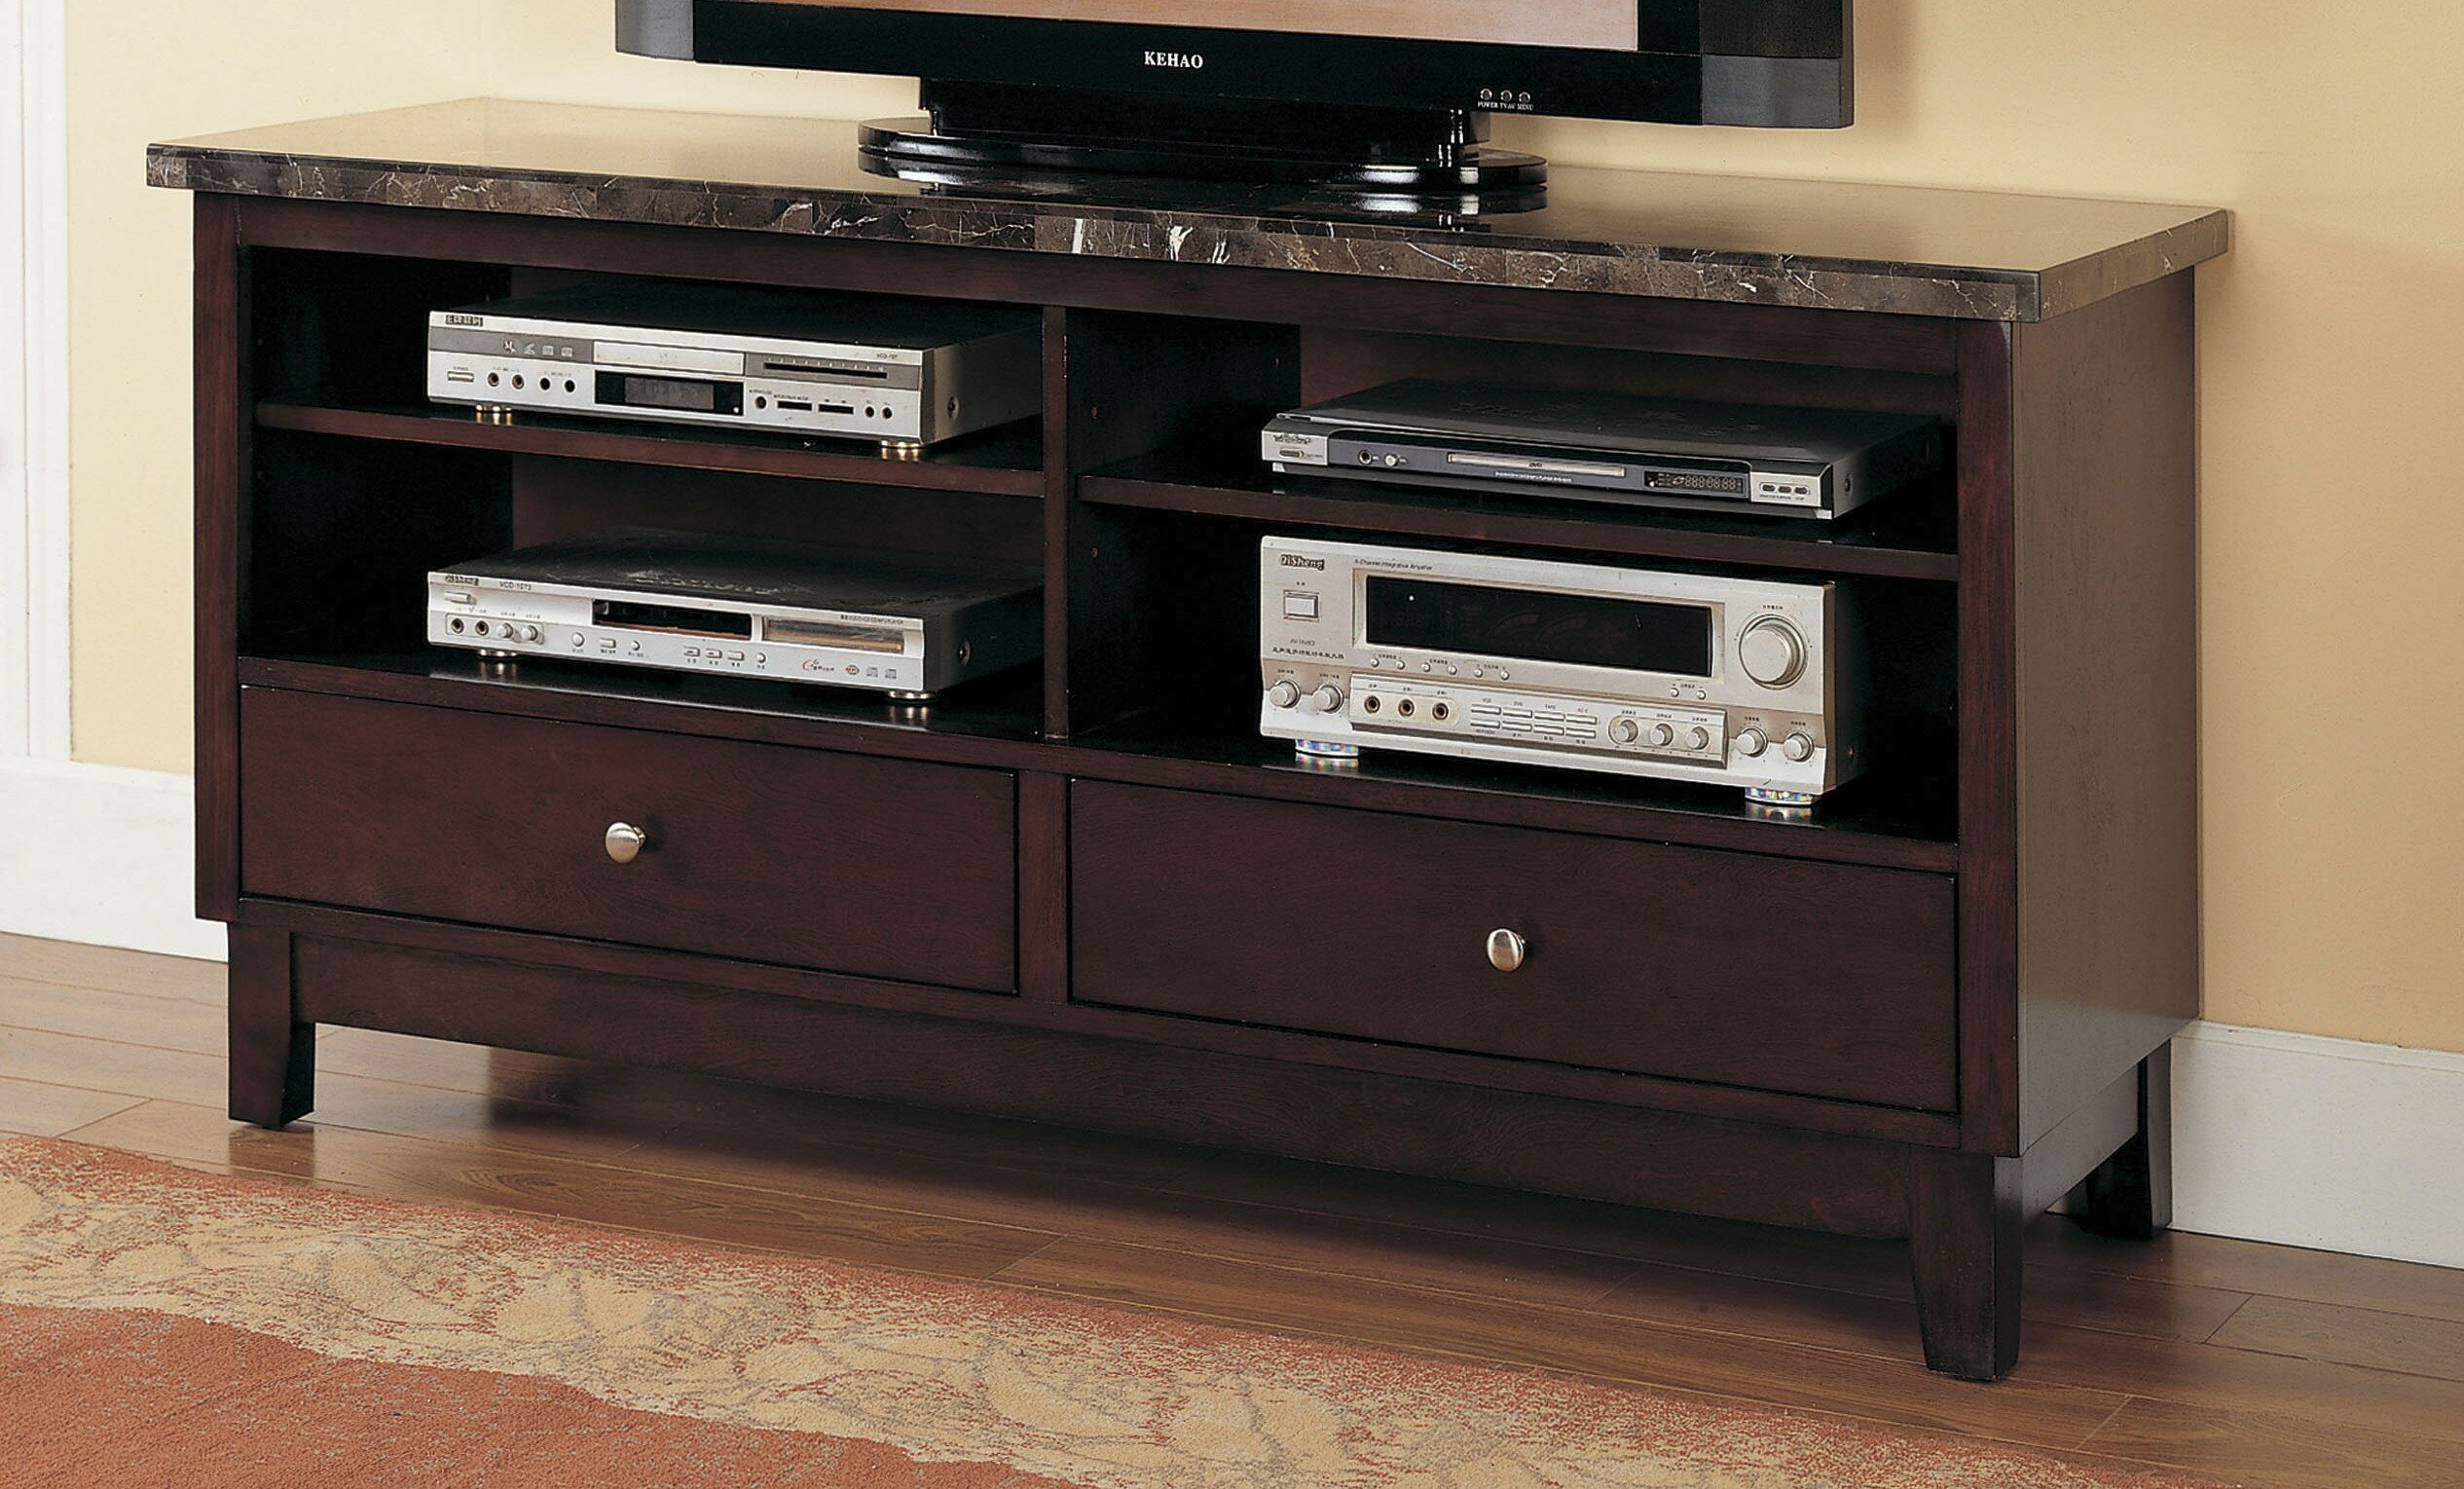 Tall Tv Stand for Bedroom Awesome Shanks Tv Stand for Tvs Up to 65 Inches